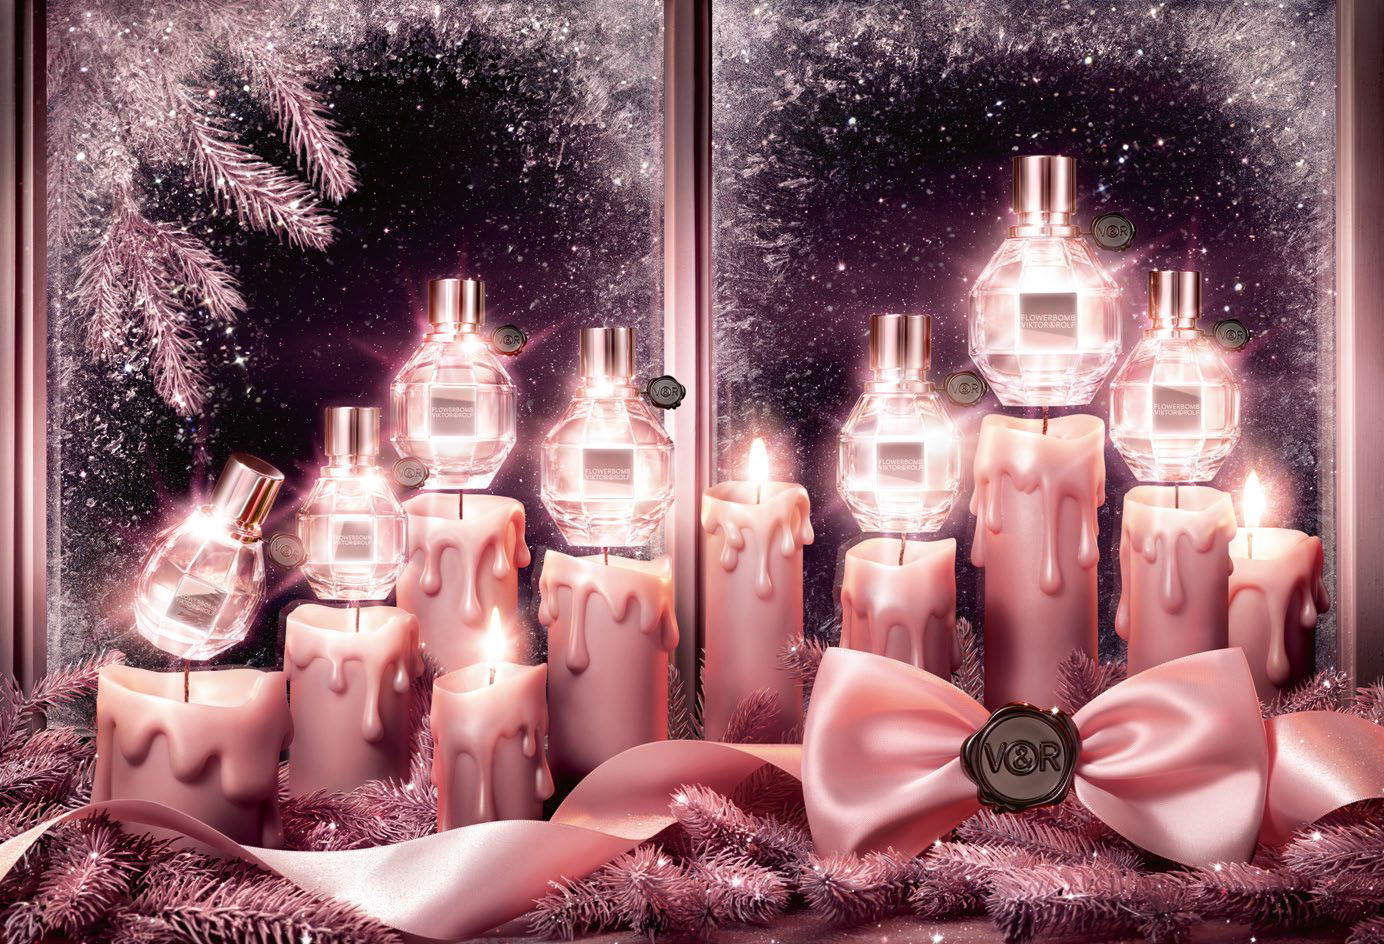 We were delighted to support another year of Christmas campaigning for the L'Oréal Designer Fragrance team, working on their festive display fixtures with key brands such as Viktor & Rolf, Giorgio Armani and Yves-Saint-Laurent. We created several suites of units that encapsulated each of the individual brand values and campaign strategy, whilst meeting individual retailer needs and balancing budget and production date requirements.